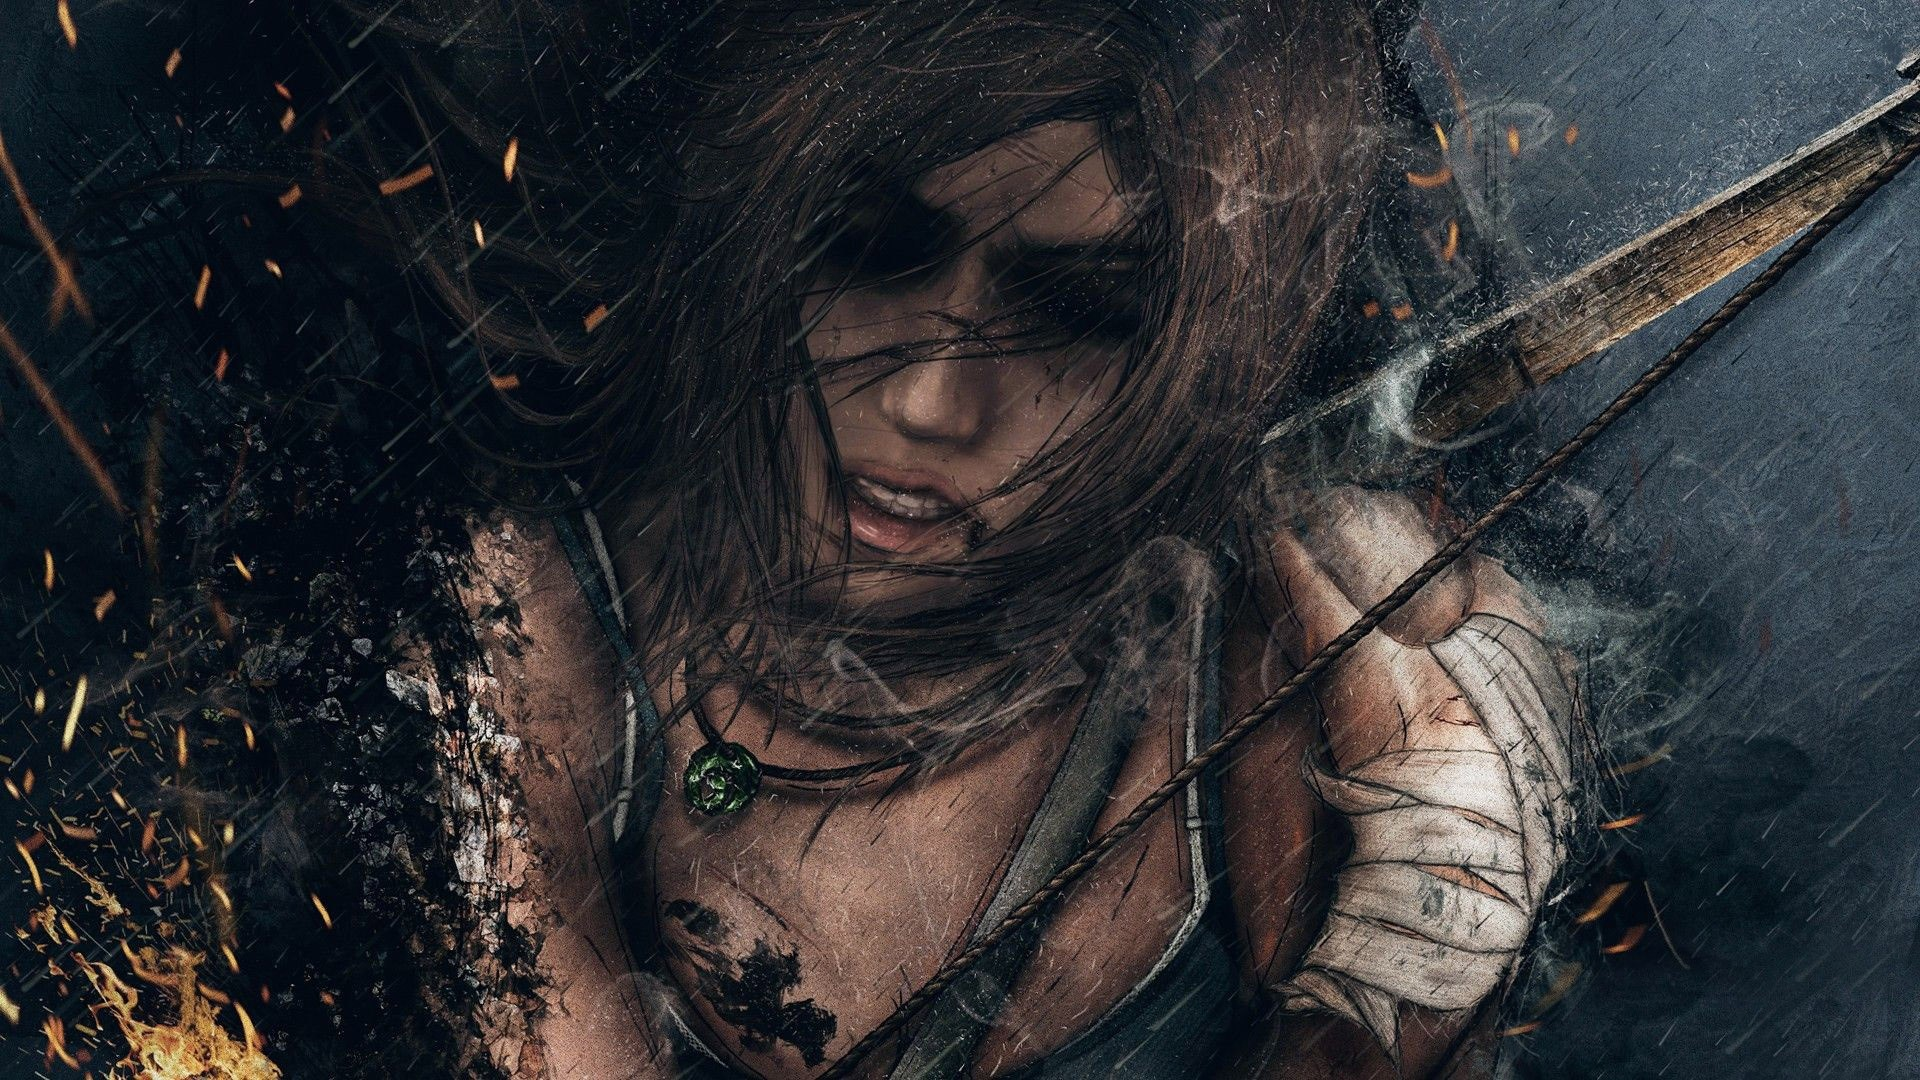 1920x1080 Tomb Raider Wallpapers | Best Wallpapers